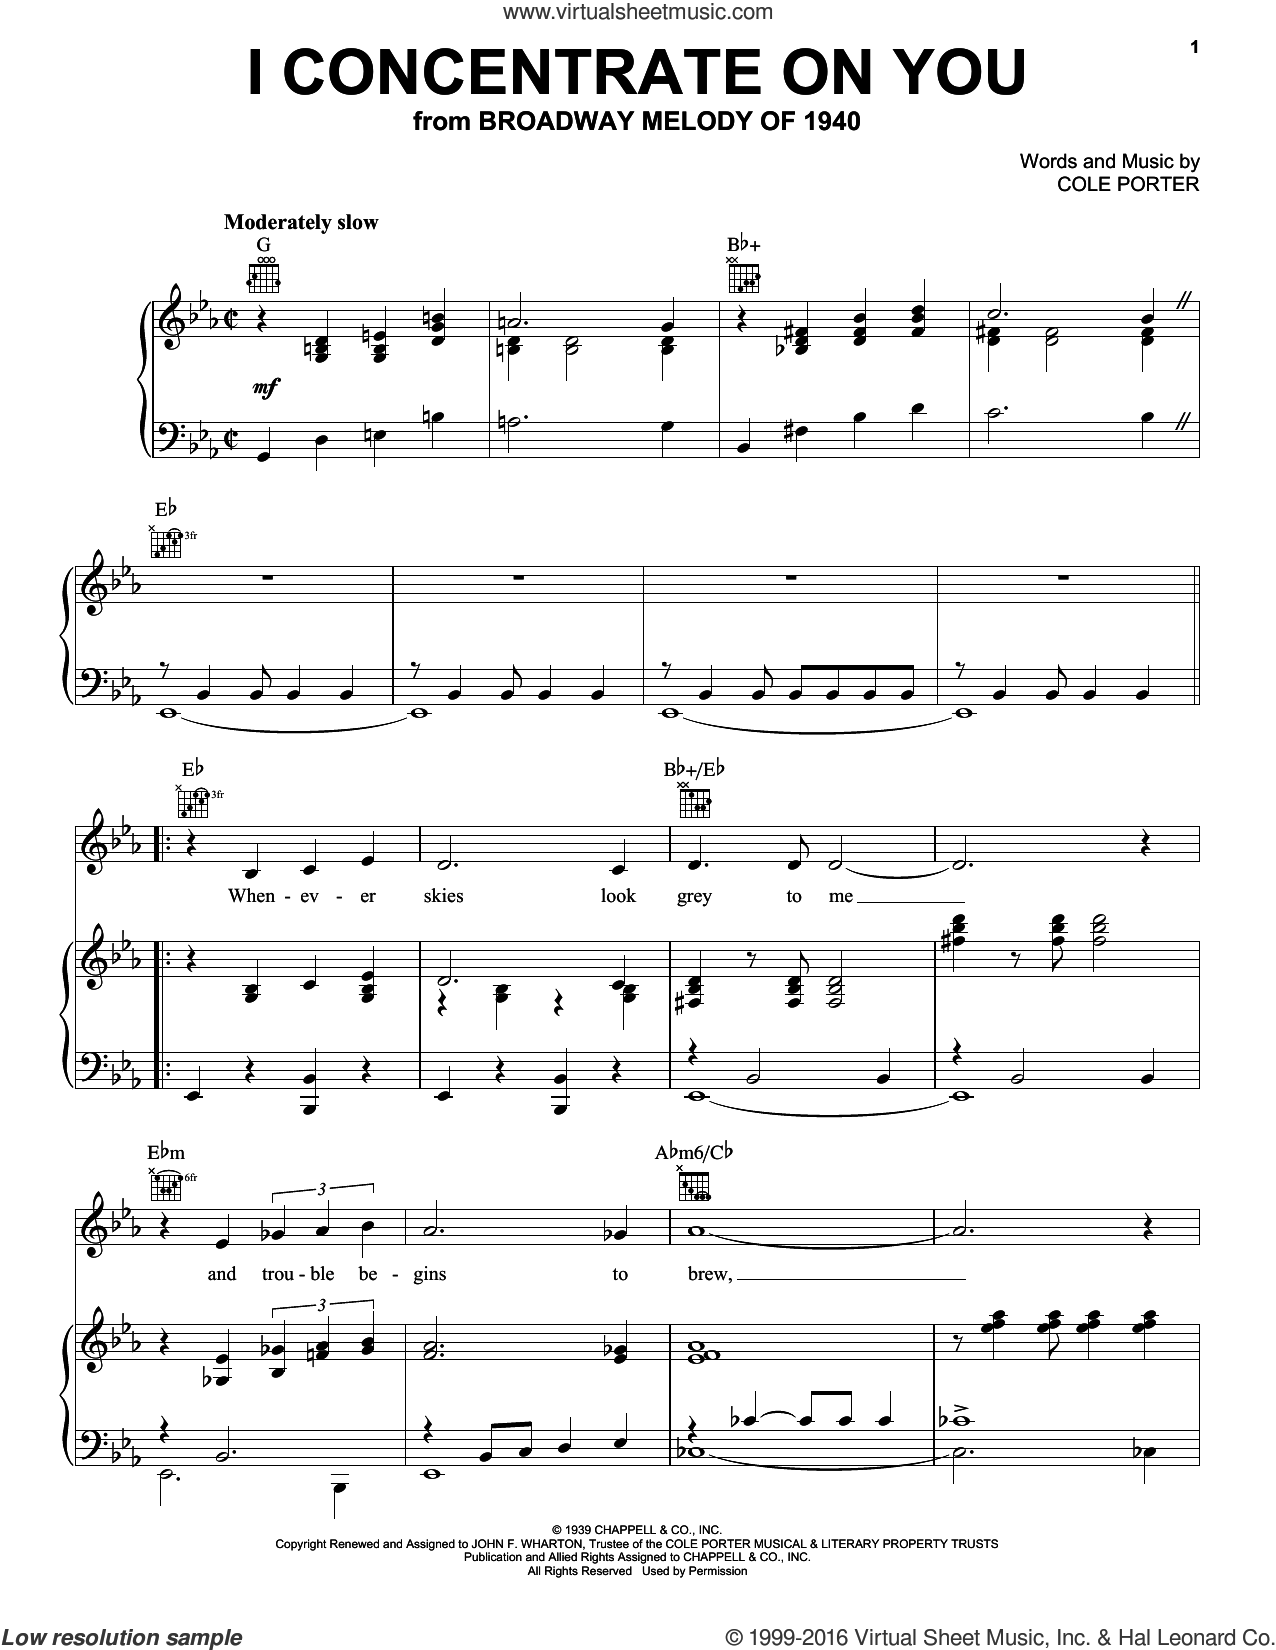 I Concentrate On You sheet music for voice, piano or guitar by Frank Sinatra, Ella Fitzgerald, Judy Garland and Cole Porter. Score Image Preview.